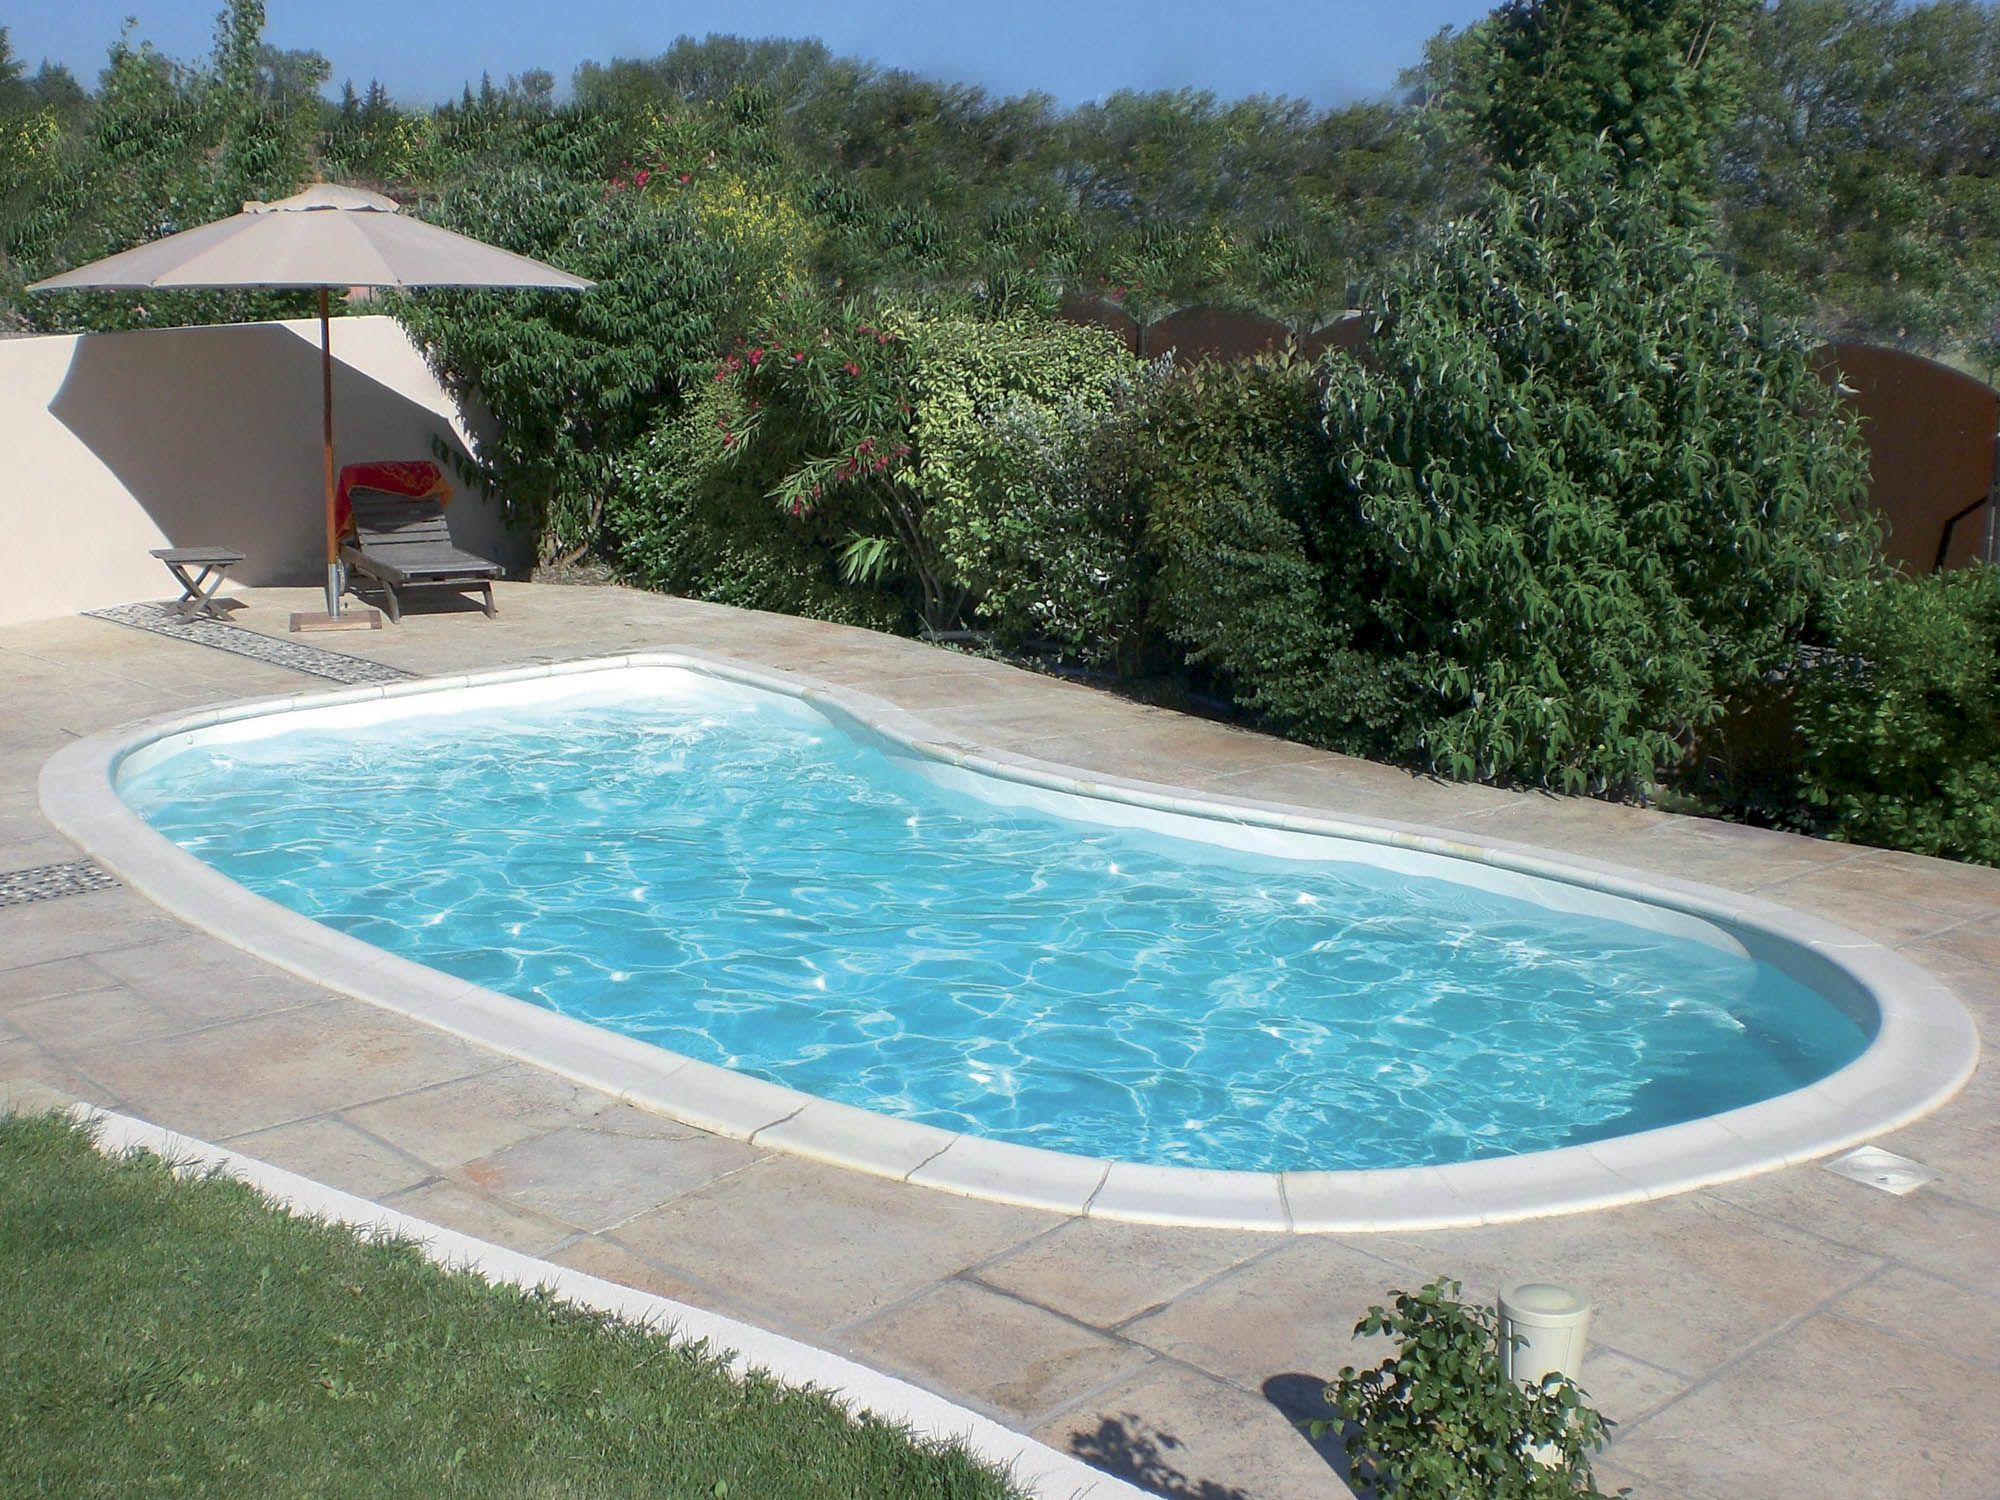 Piscine coque polyester ovation piscine haricot for Piscine coque fond plat